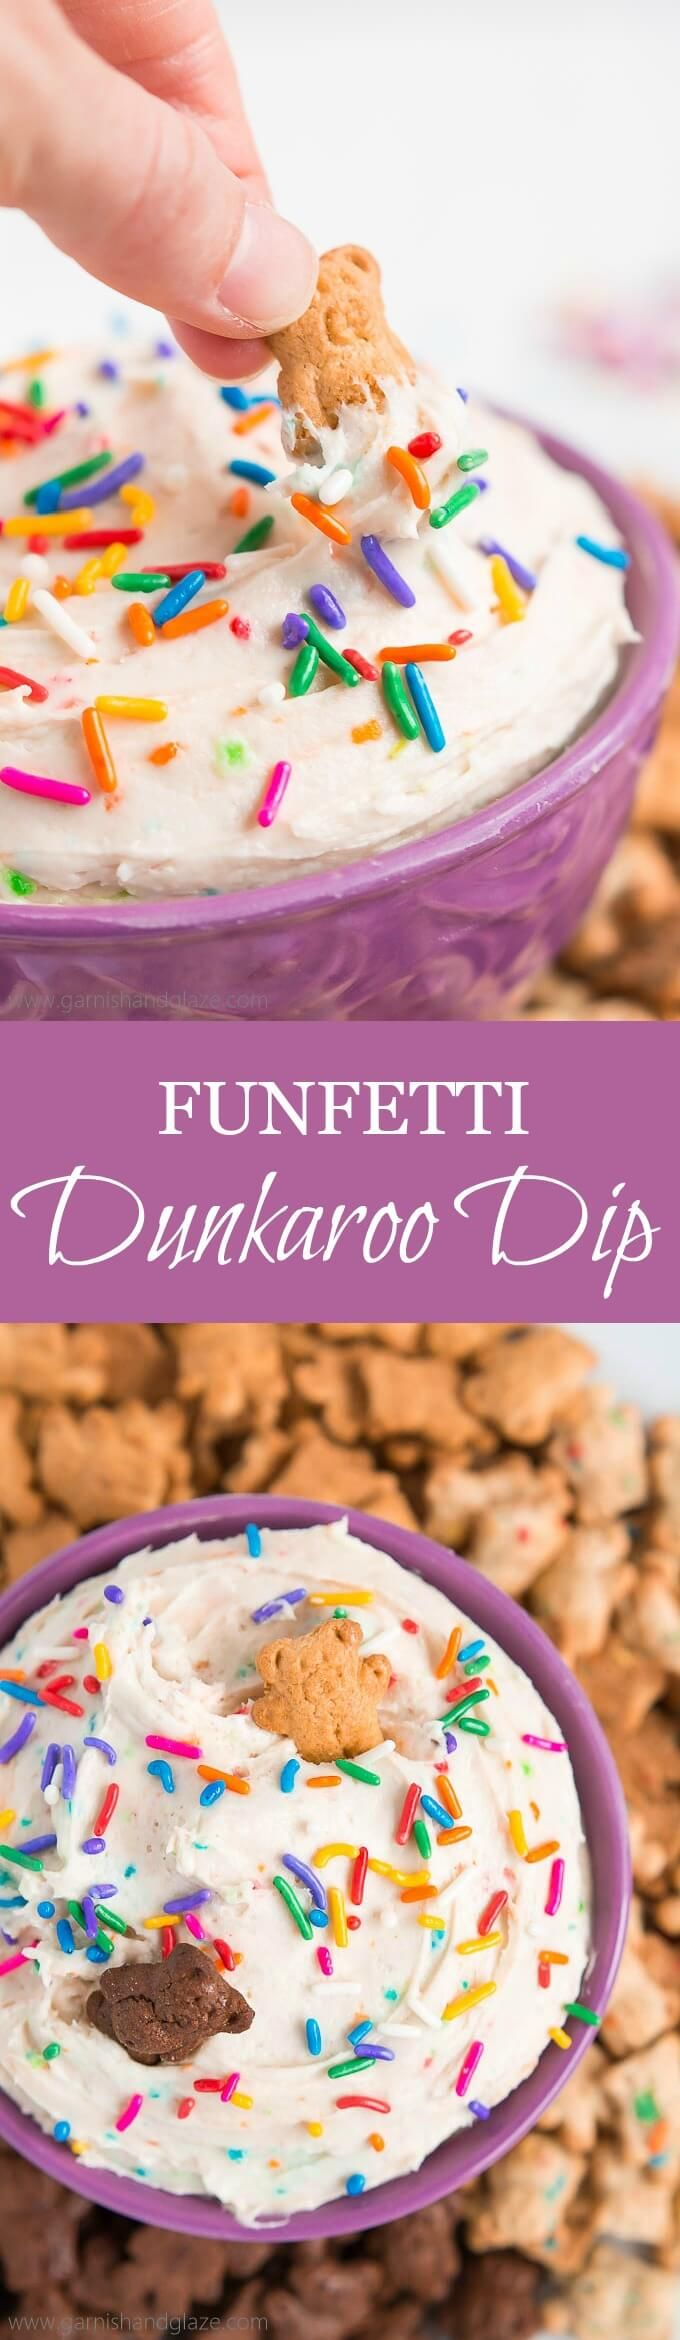 Take 3 minutes and 3 ingredients to make FUNFETTI DUNKAROO DIP and